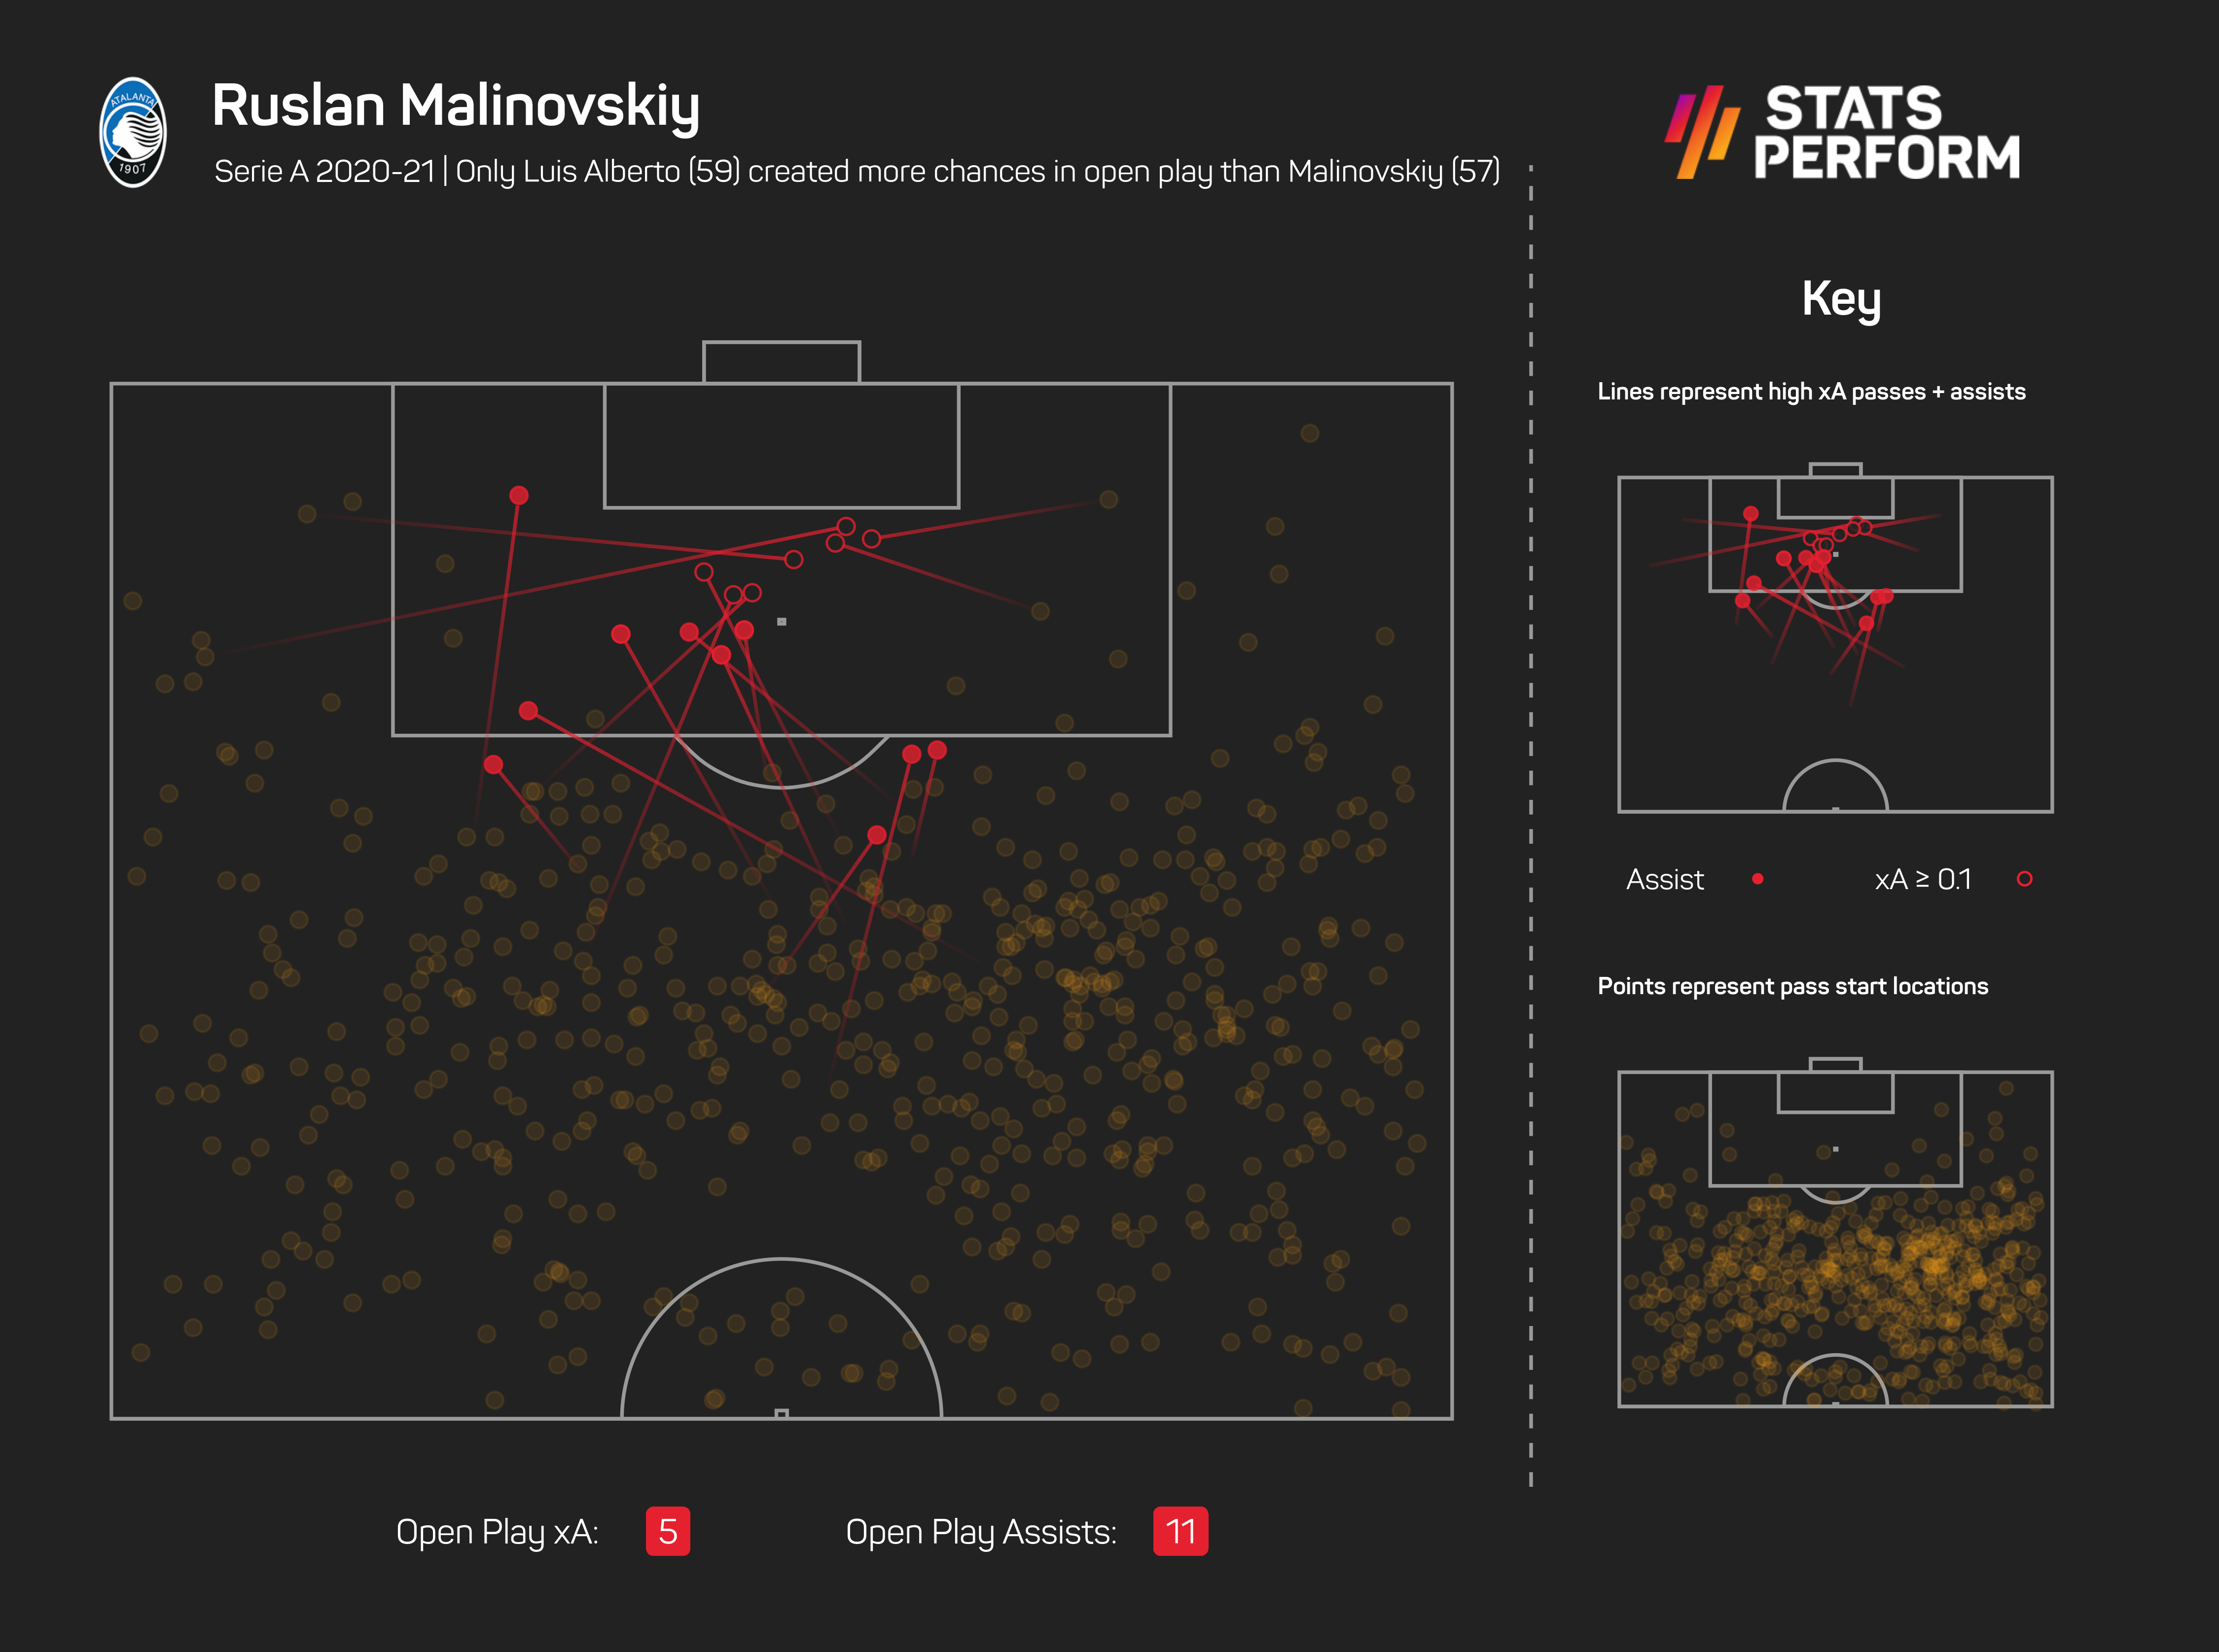 Only Luis Alberto (59) created more chances in open play than Malinovskiy (57) this season in Serie A